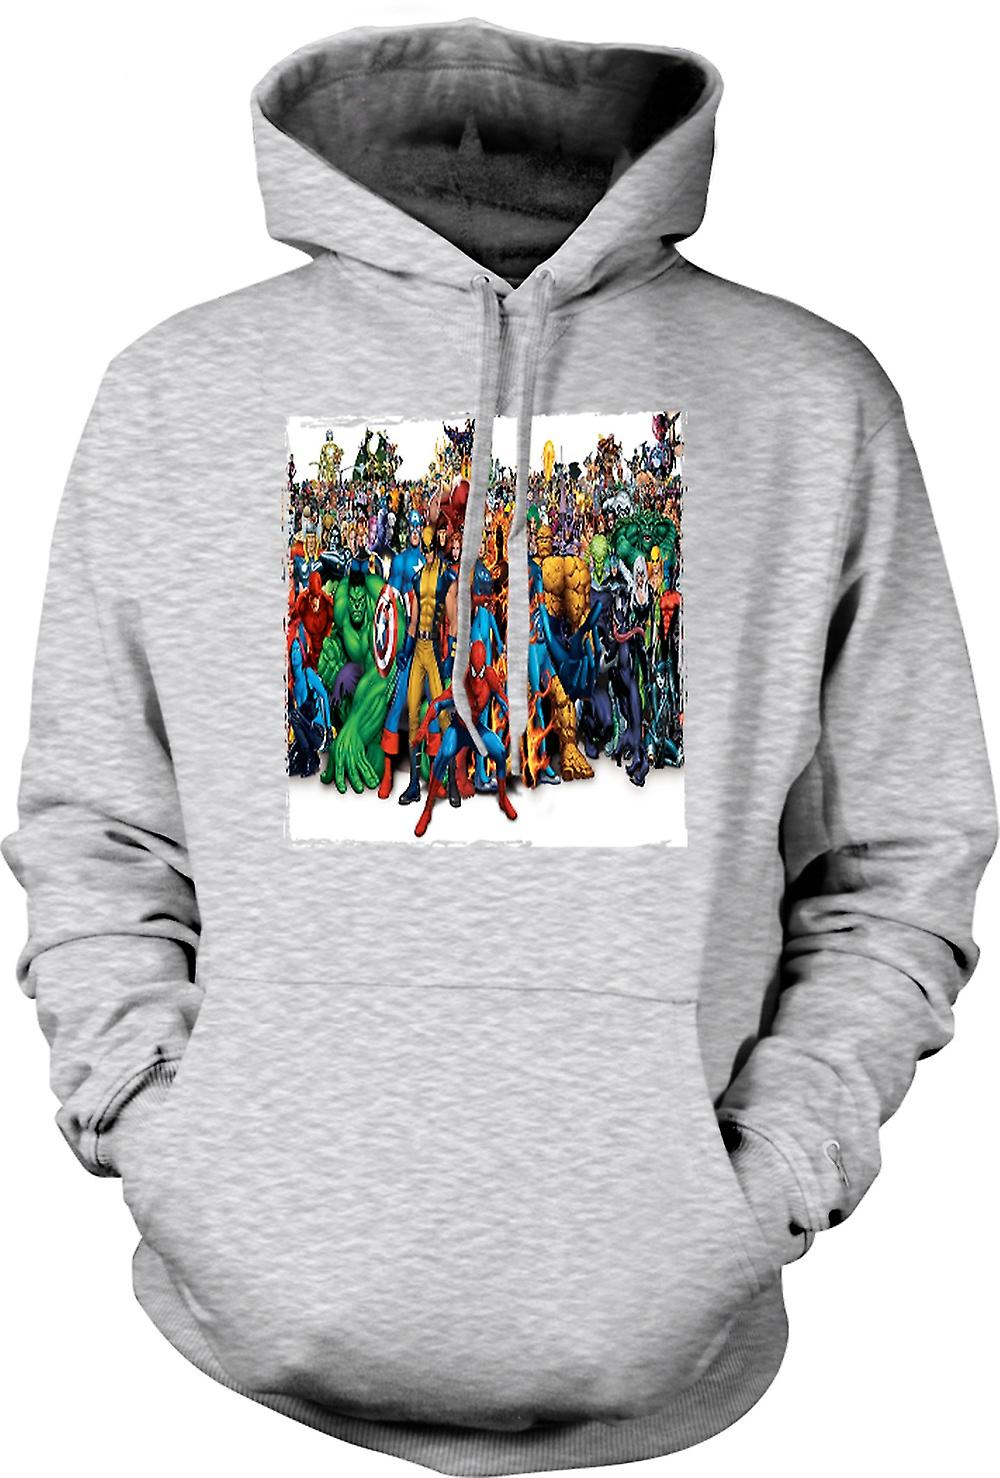 Mens Hoodie - Marvel Comic Hero grupp - porträtt